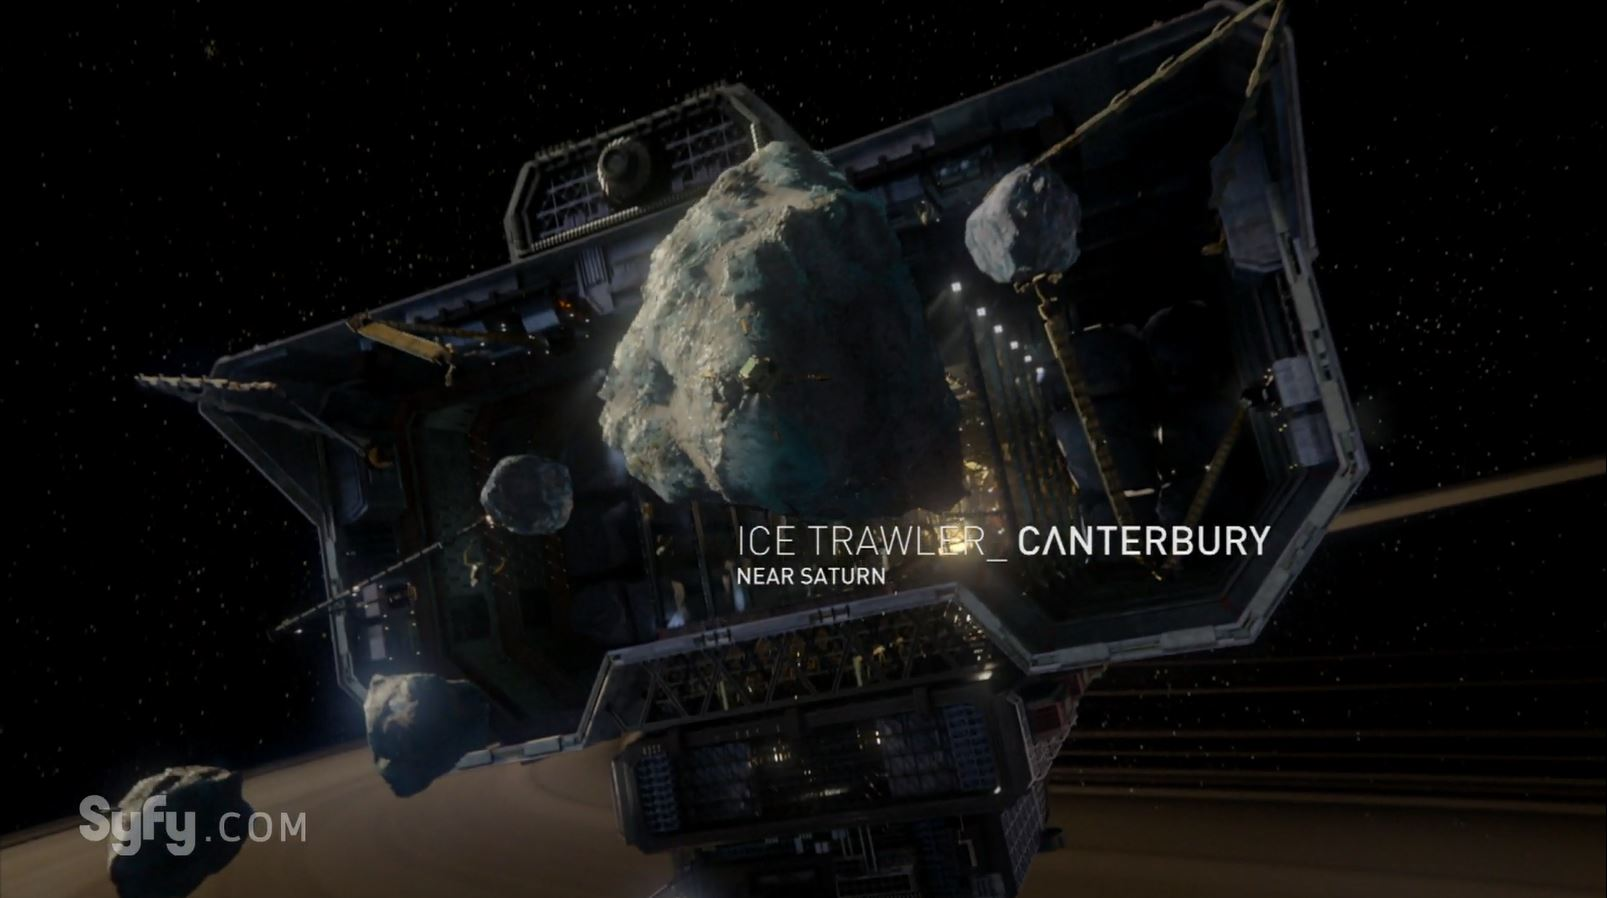 The Canterbury - the Expanse